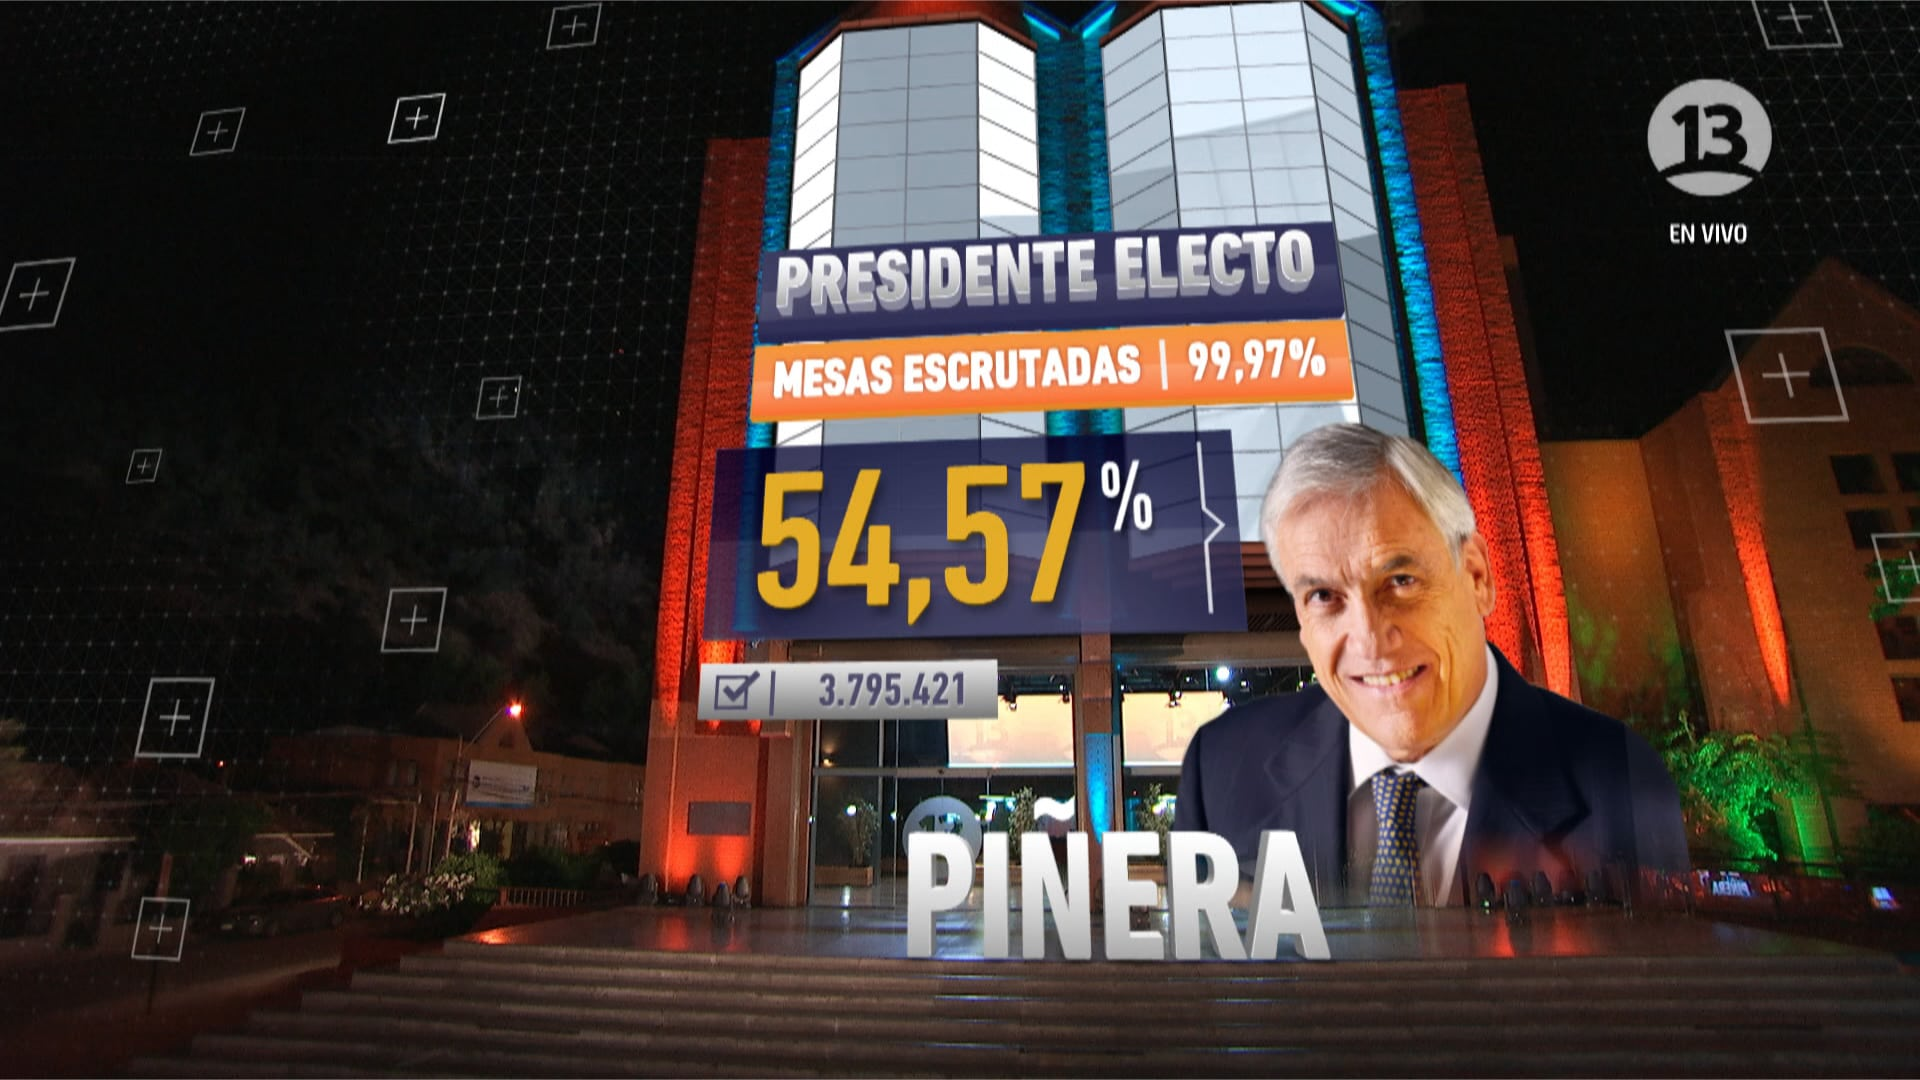 Girraphic Canal 13 Chile Elections 2017